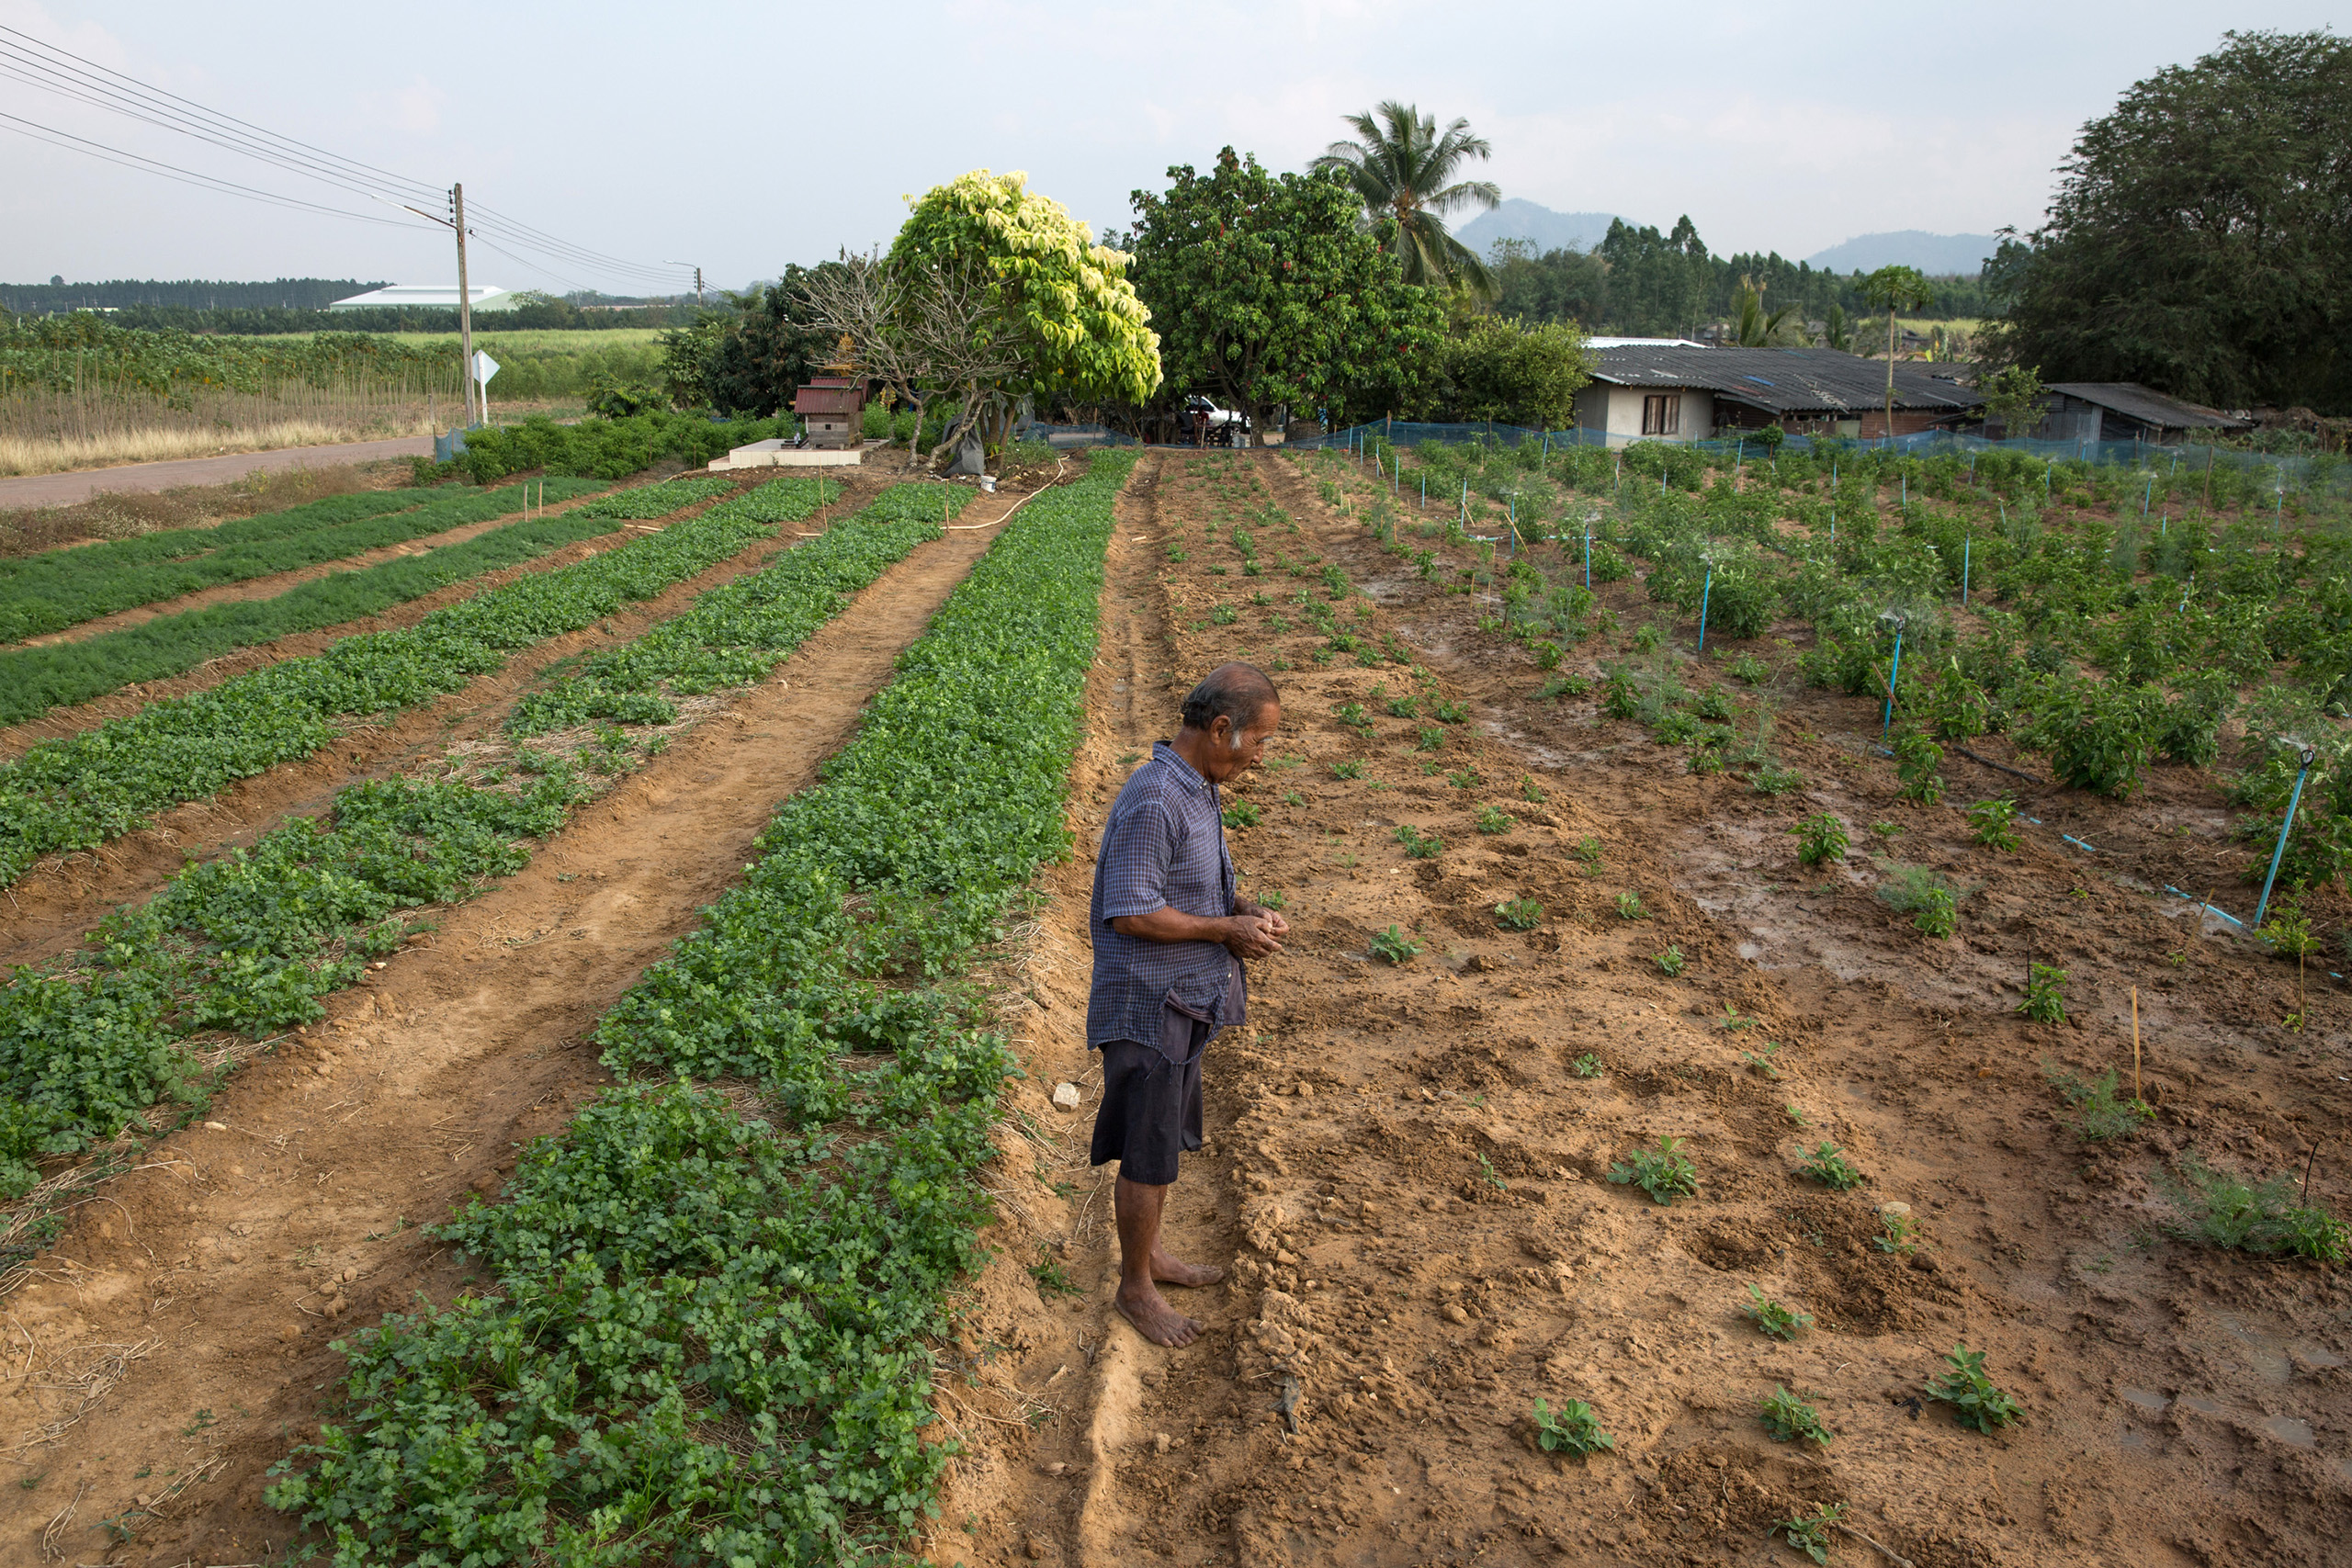 A farmer who was born here surveys his land which is located roughly one kilometre from the factory. The factory can be seen in the distance.